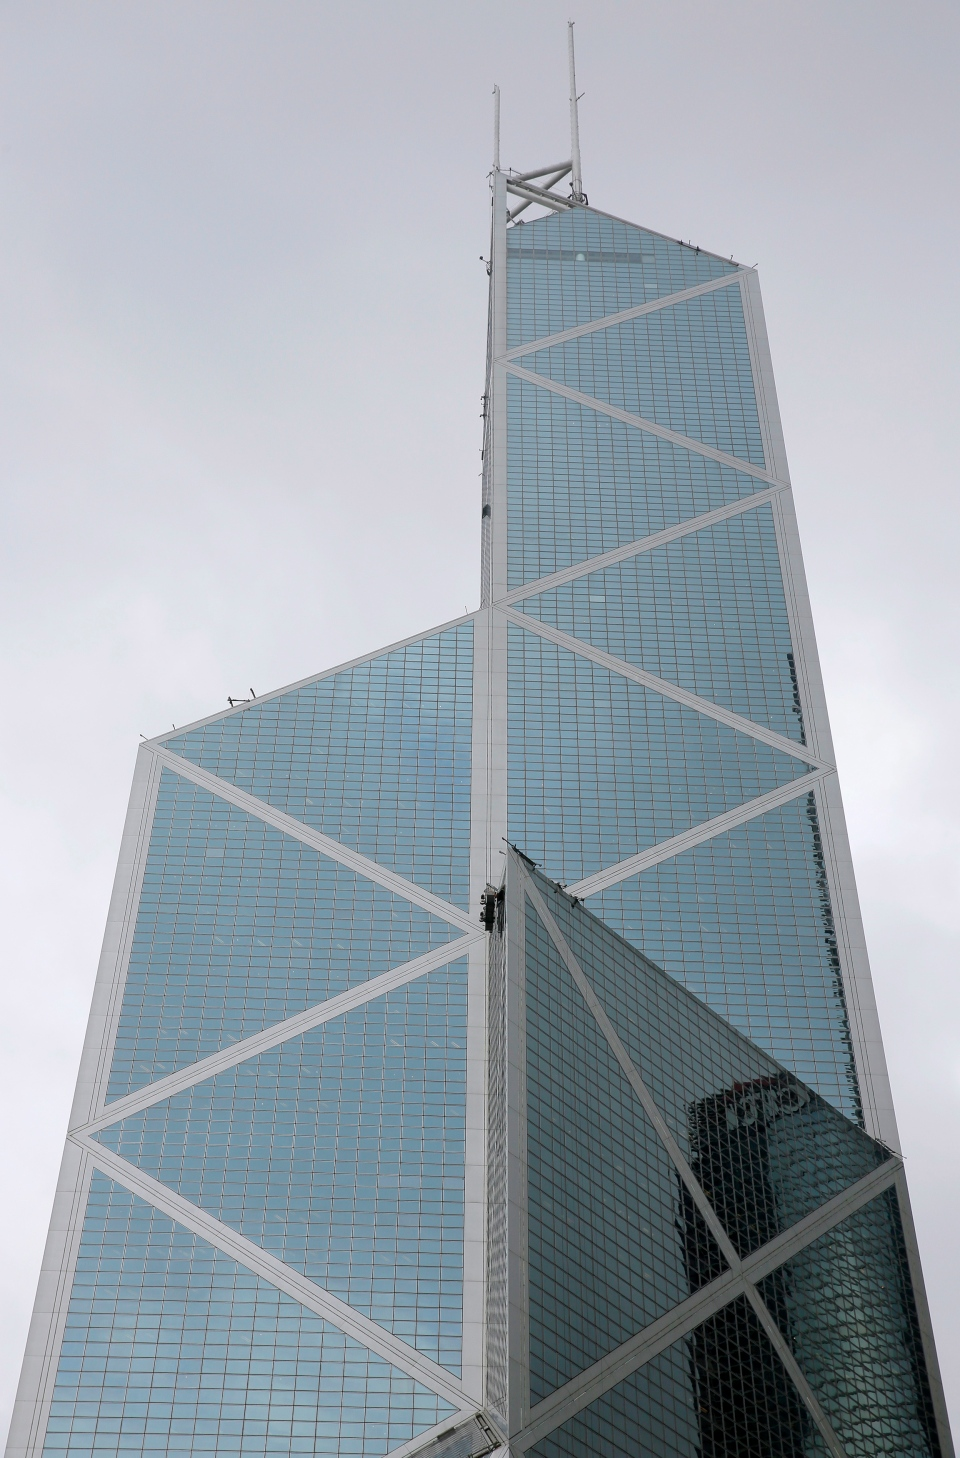 Bank of China Tower, a building designed by architect I.M. Pei, is seen in Hong Kong Friday, May 17, 2019. (AP Photo/Vincent Yu)